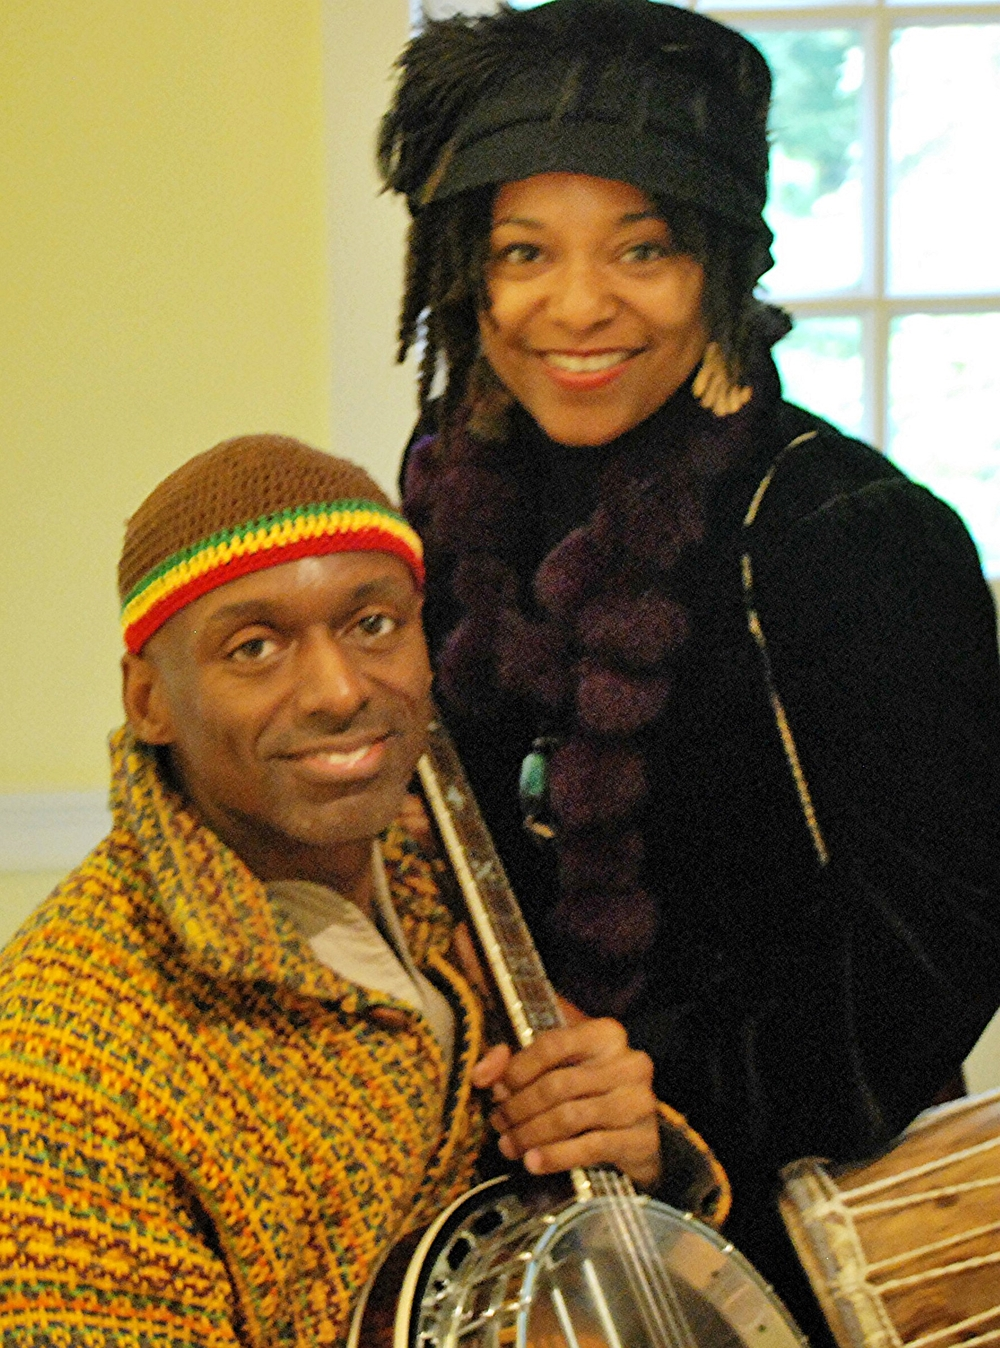 April and Ayodele at Legends at Historic Hudson Valley's Washington Irving's Sunnyside